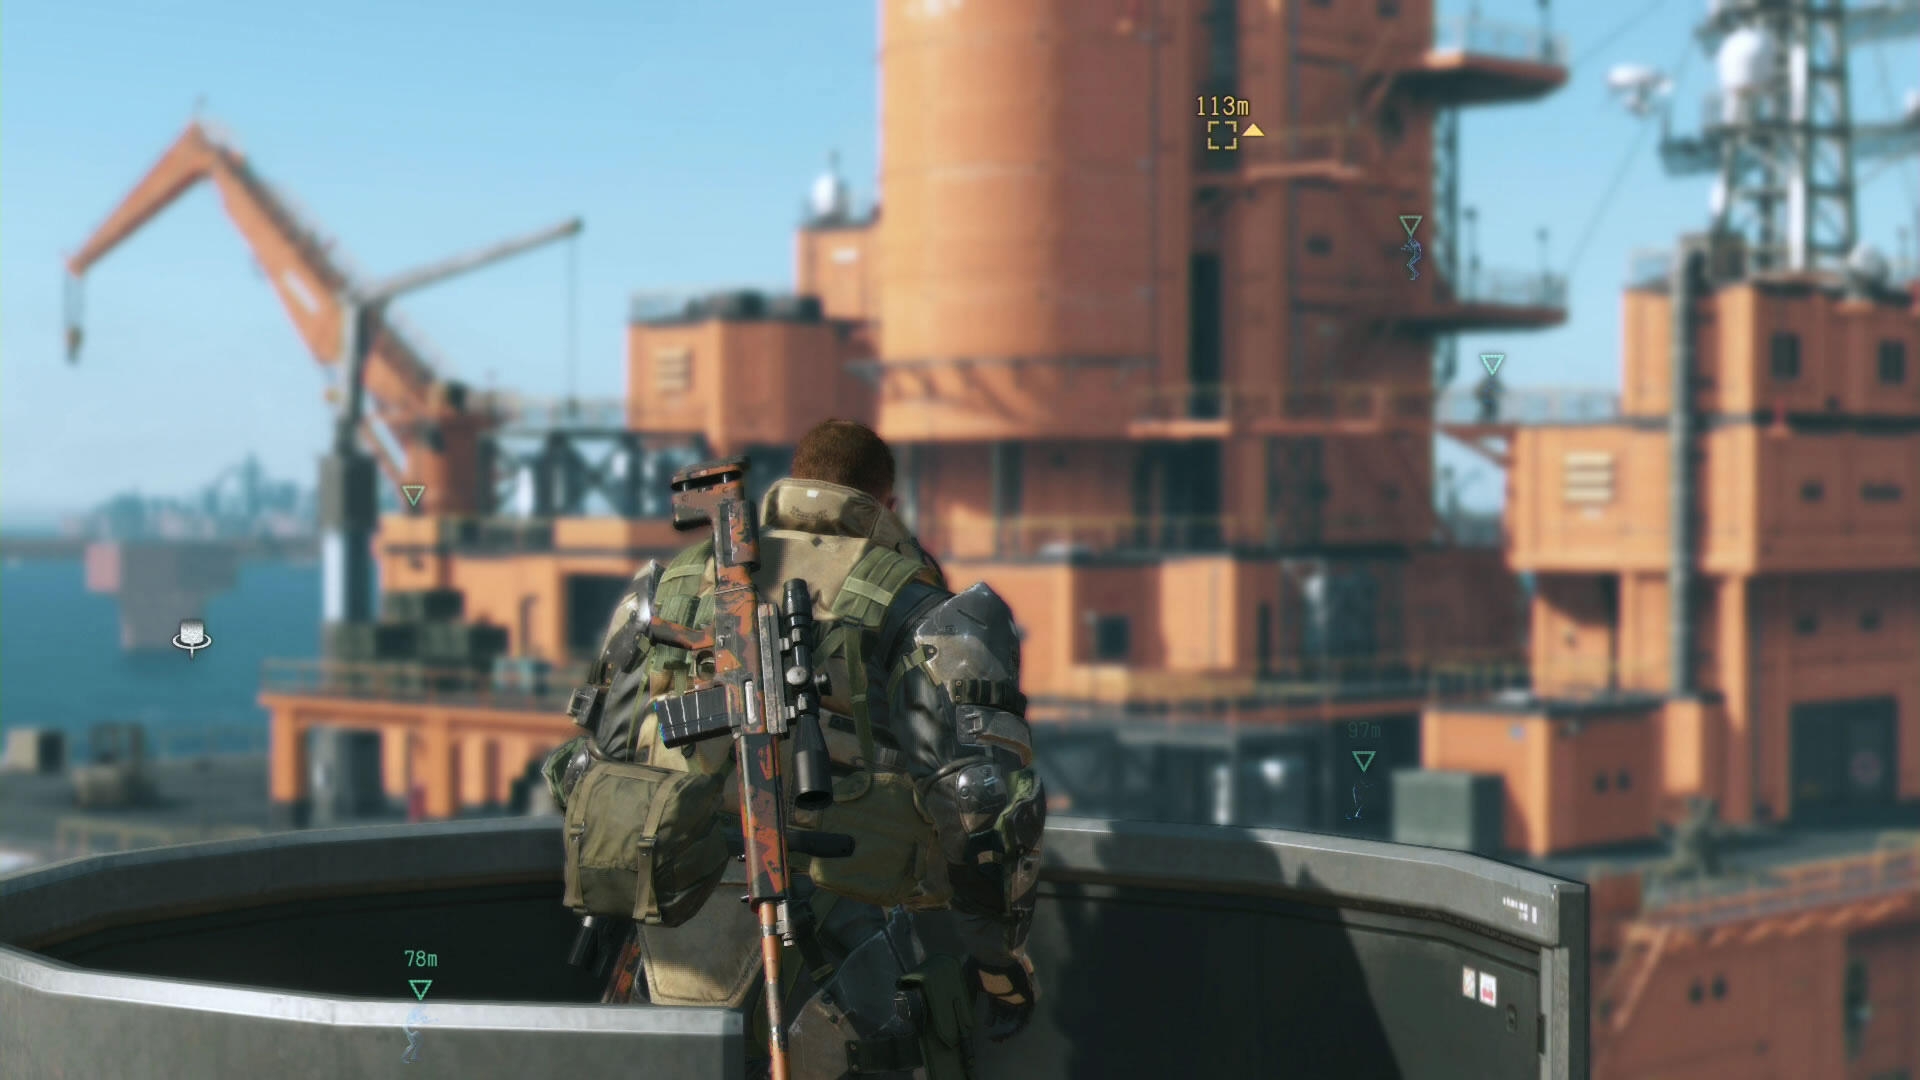 Here's Why the Secret Metal Gear Solid 5 Nuclear Disarmament Scene Triggered